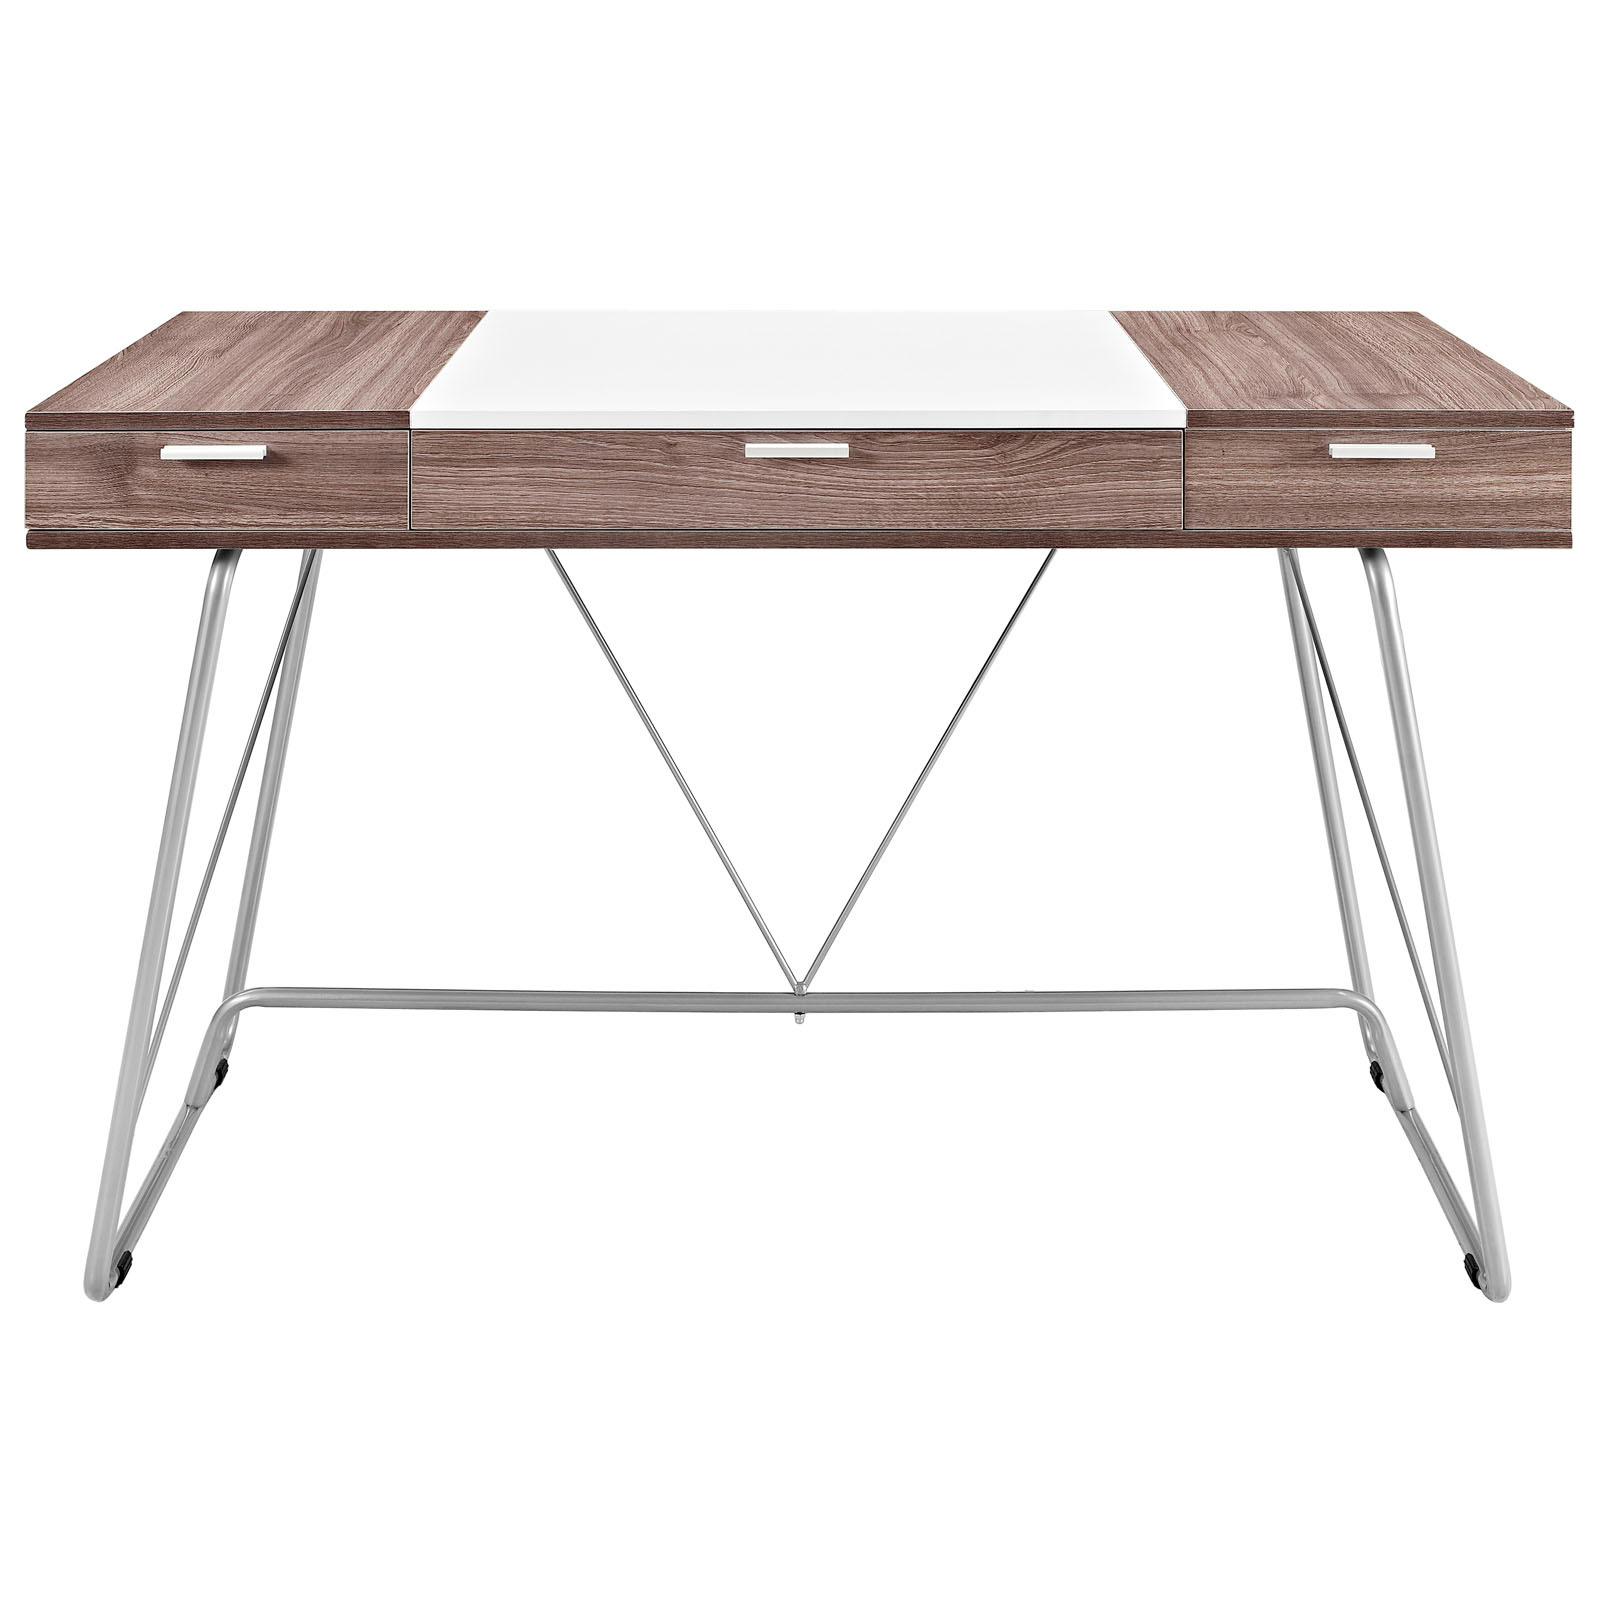 space saving desk from modway front view shown in birch brown